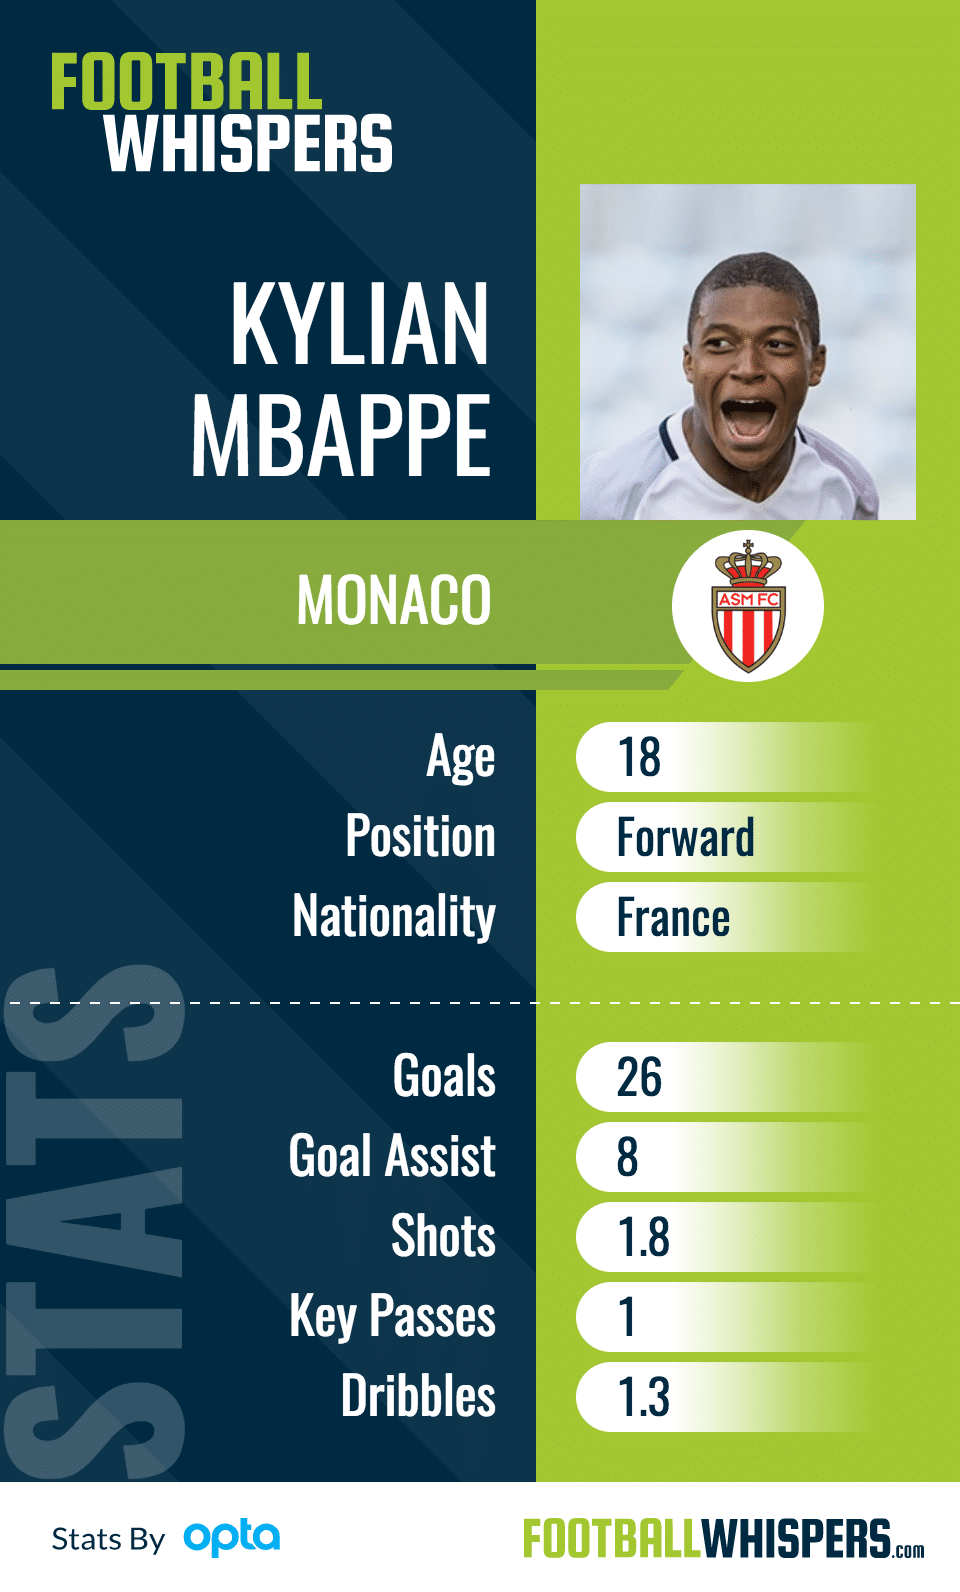 Why Kylian Mbappé Could Become World's Best Under Klopp